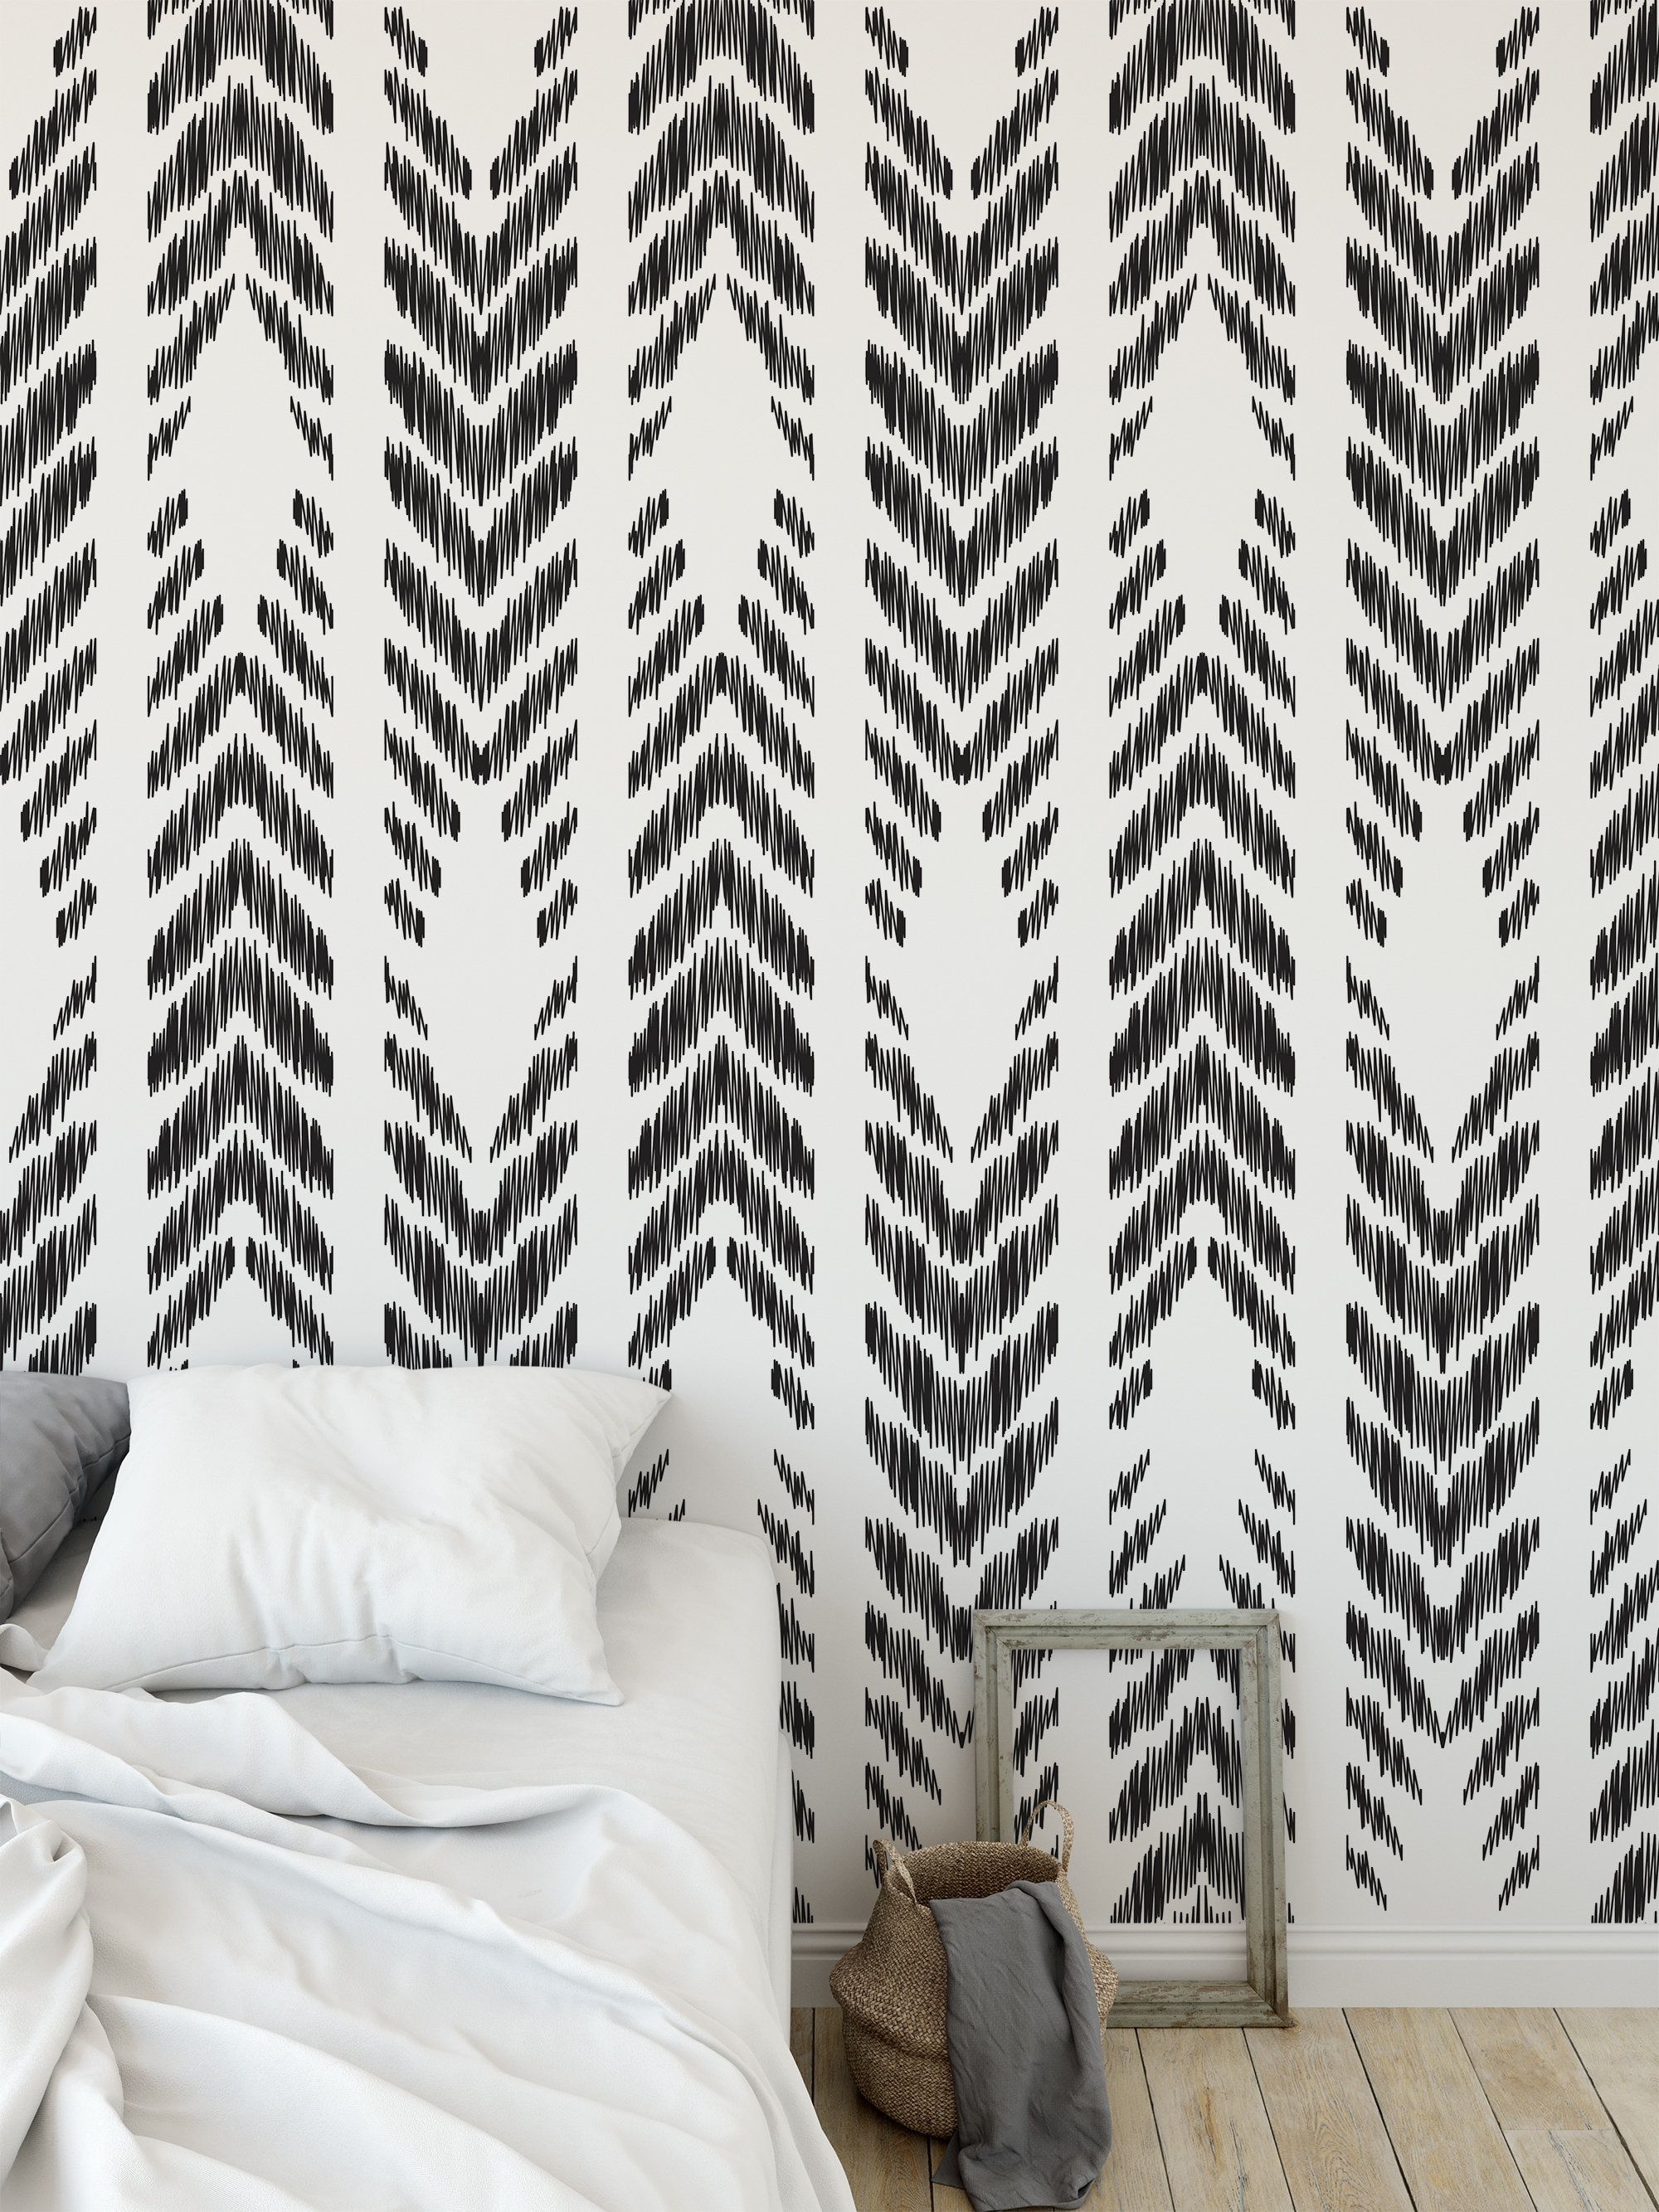 High Quality Repositionable Removable Self Adhesive Peel And Etsy Peel And Stick Wallpaper Vinyl Wallpaper Accent Wall Bedroom